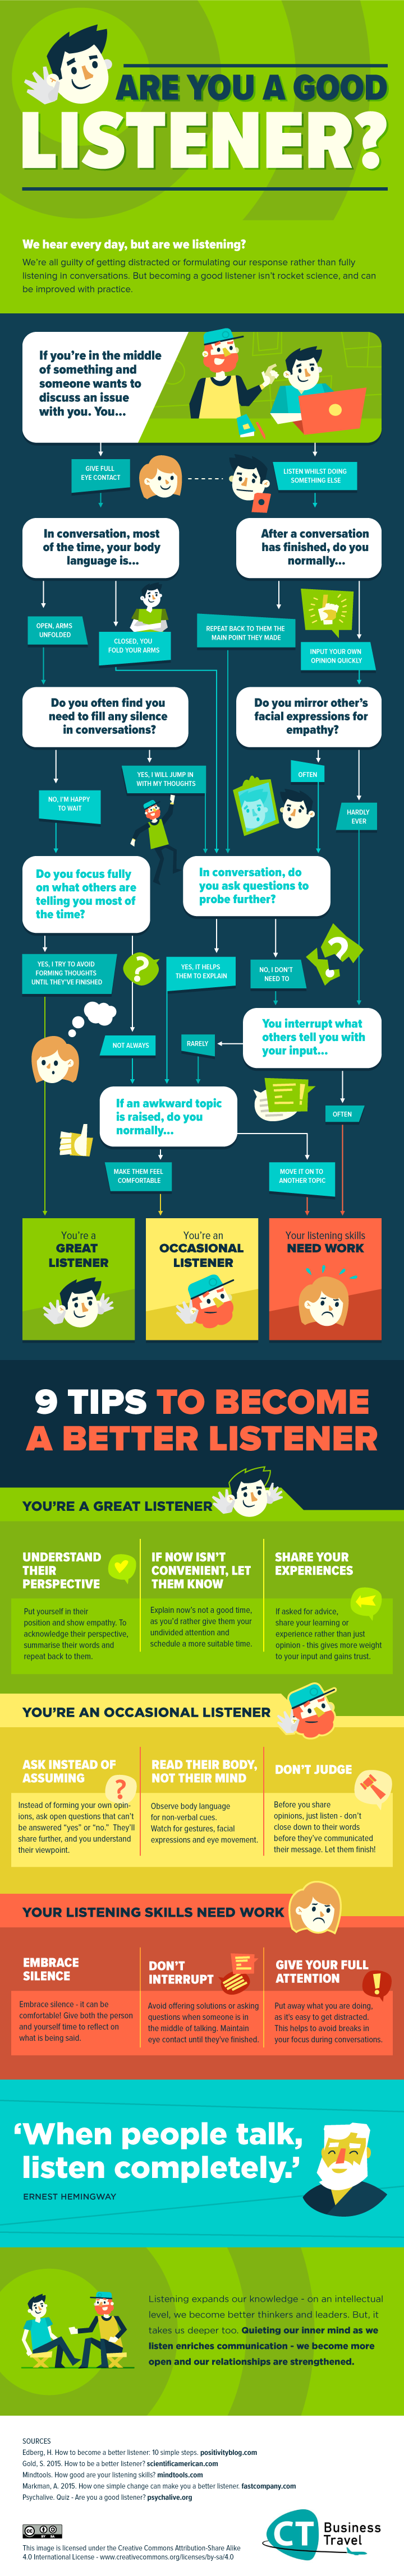 Are You a Good Listener? #Infographic